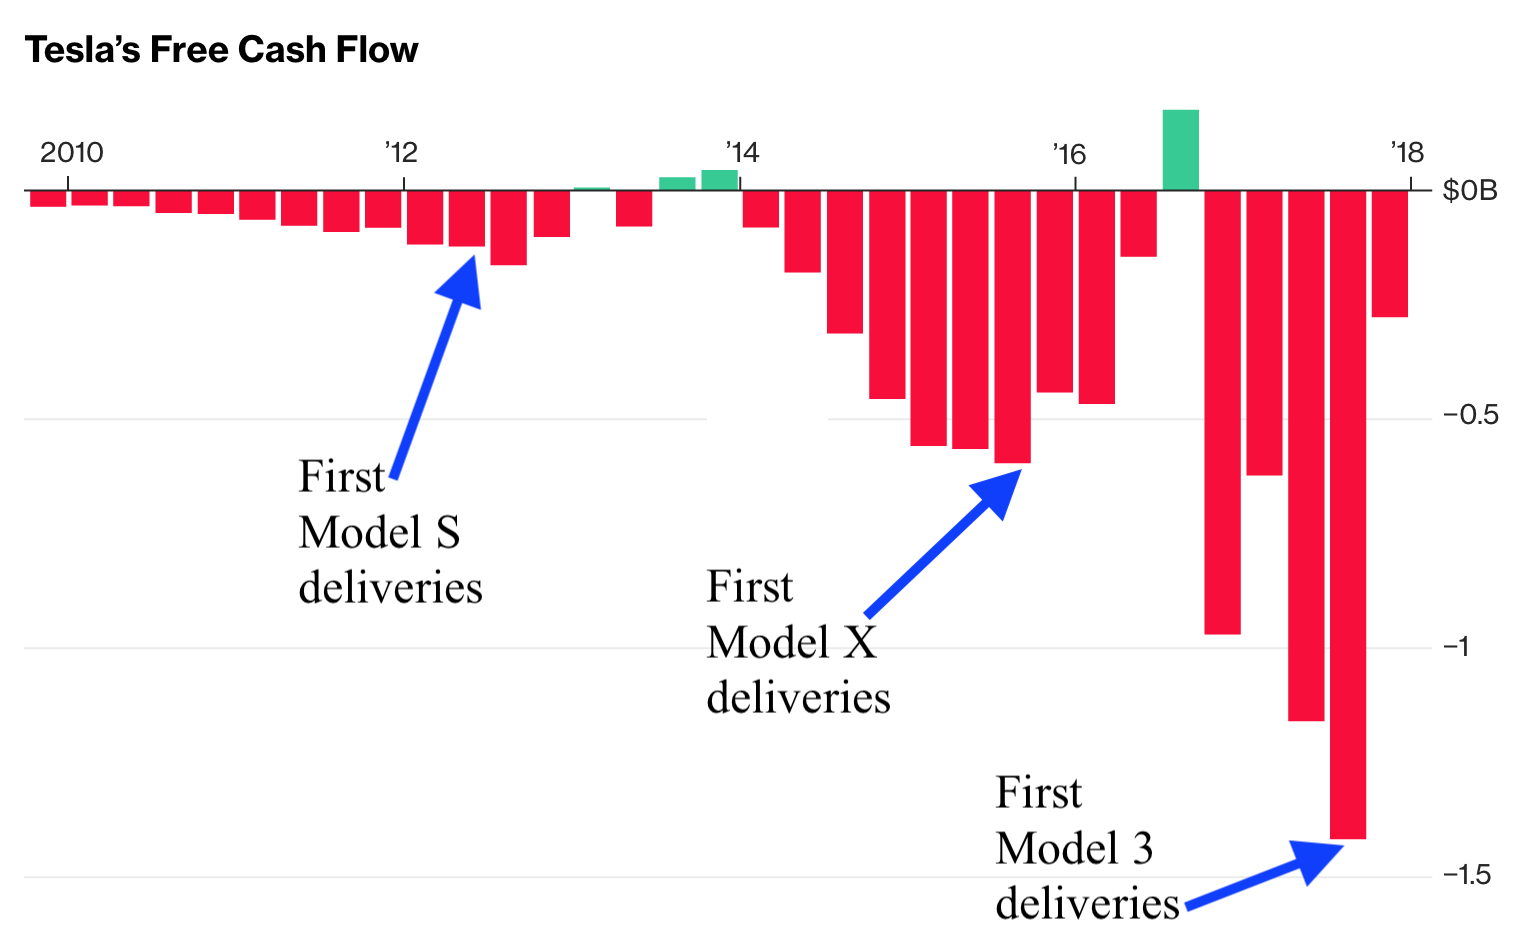 Elon Musk says don't worry about Tesla's burn rate—he might